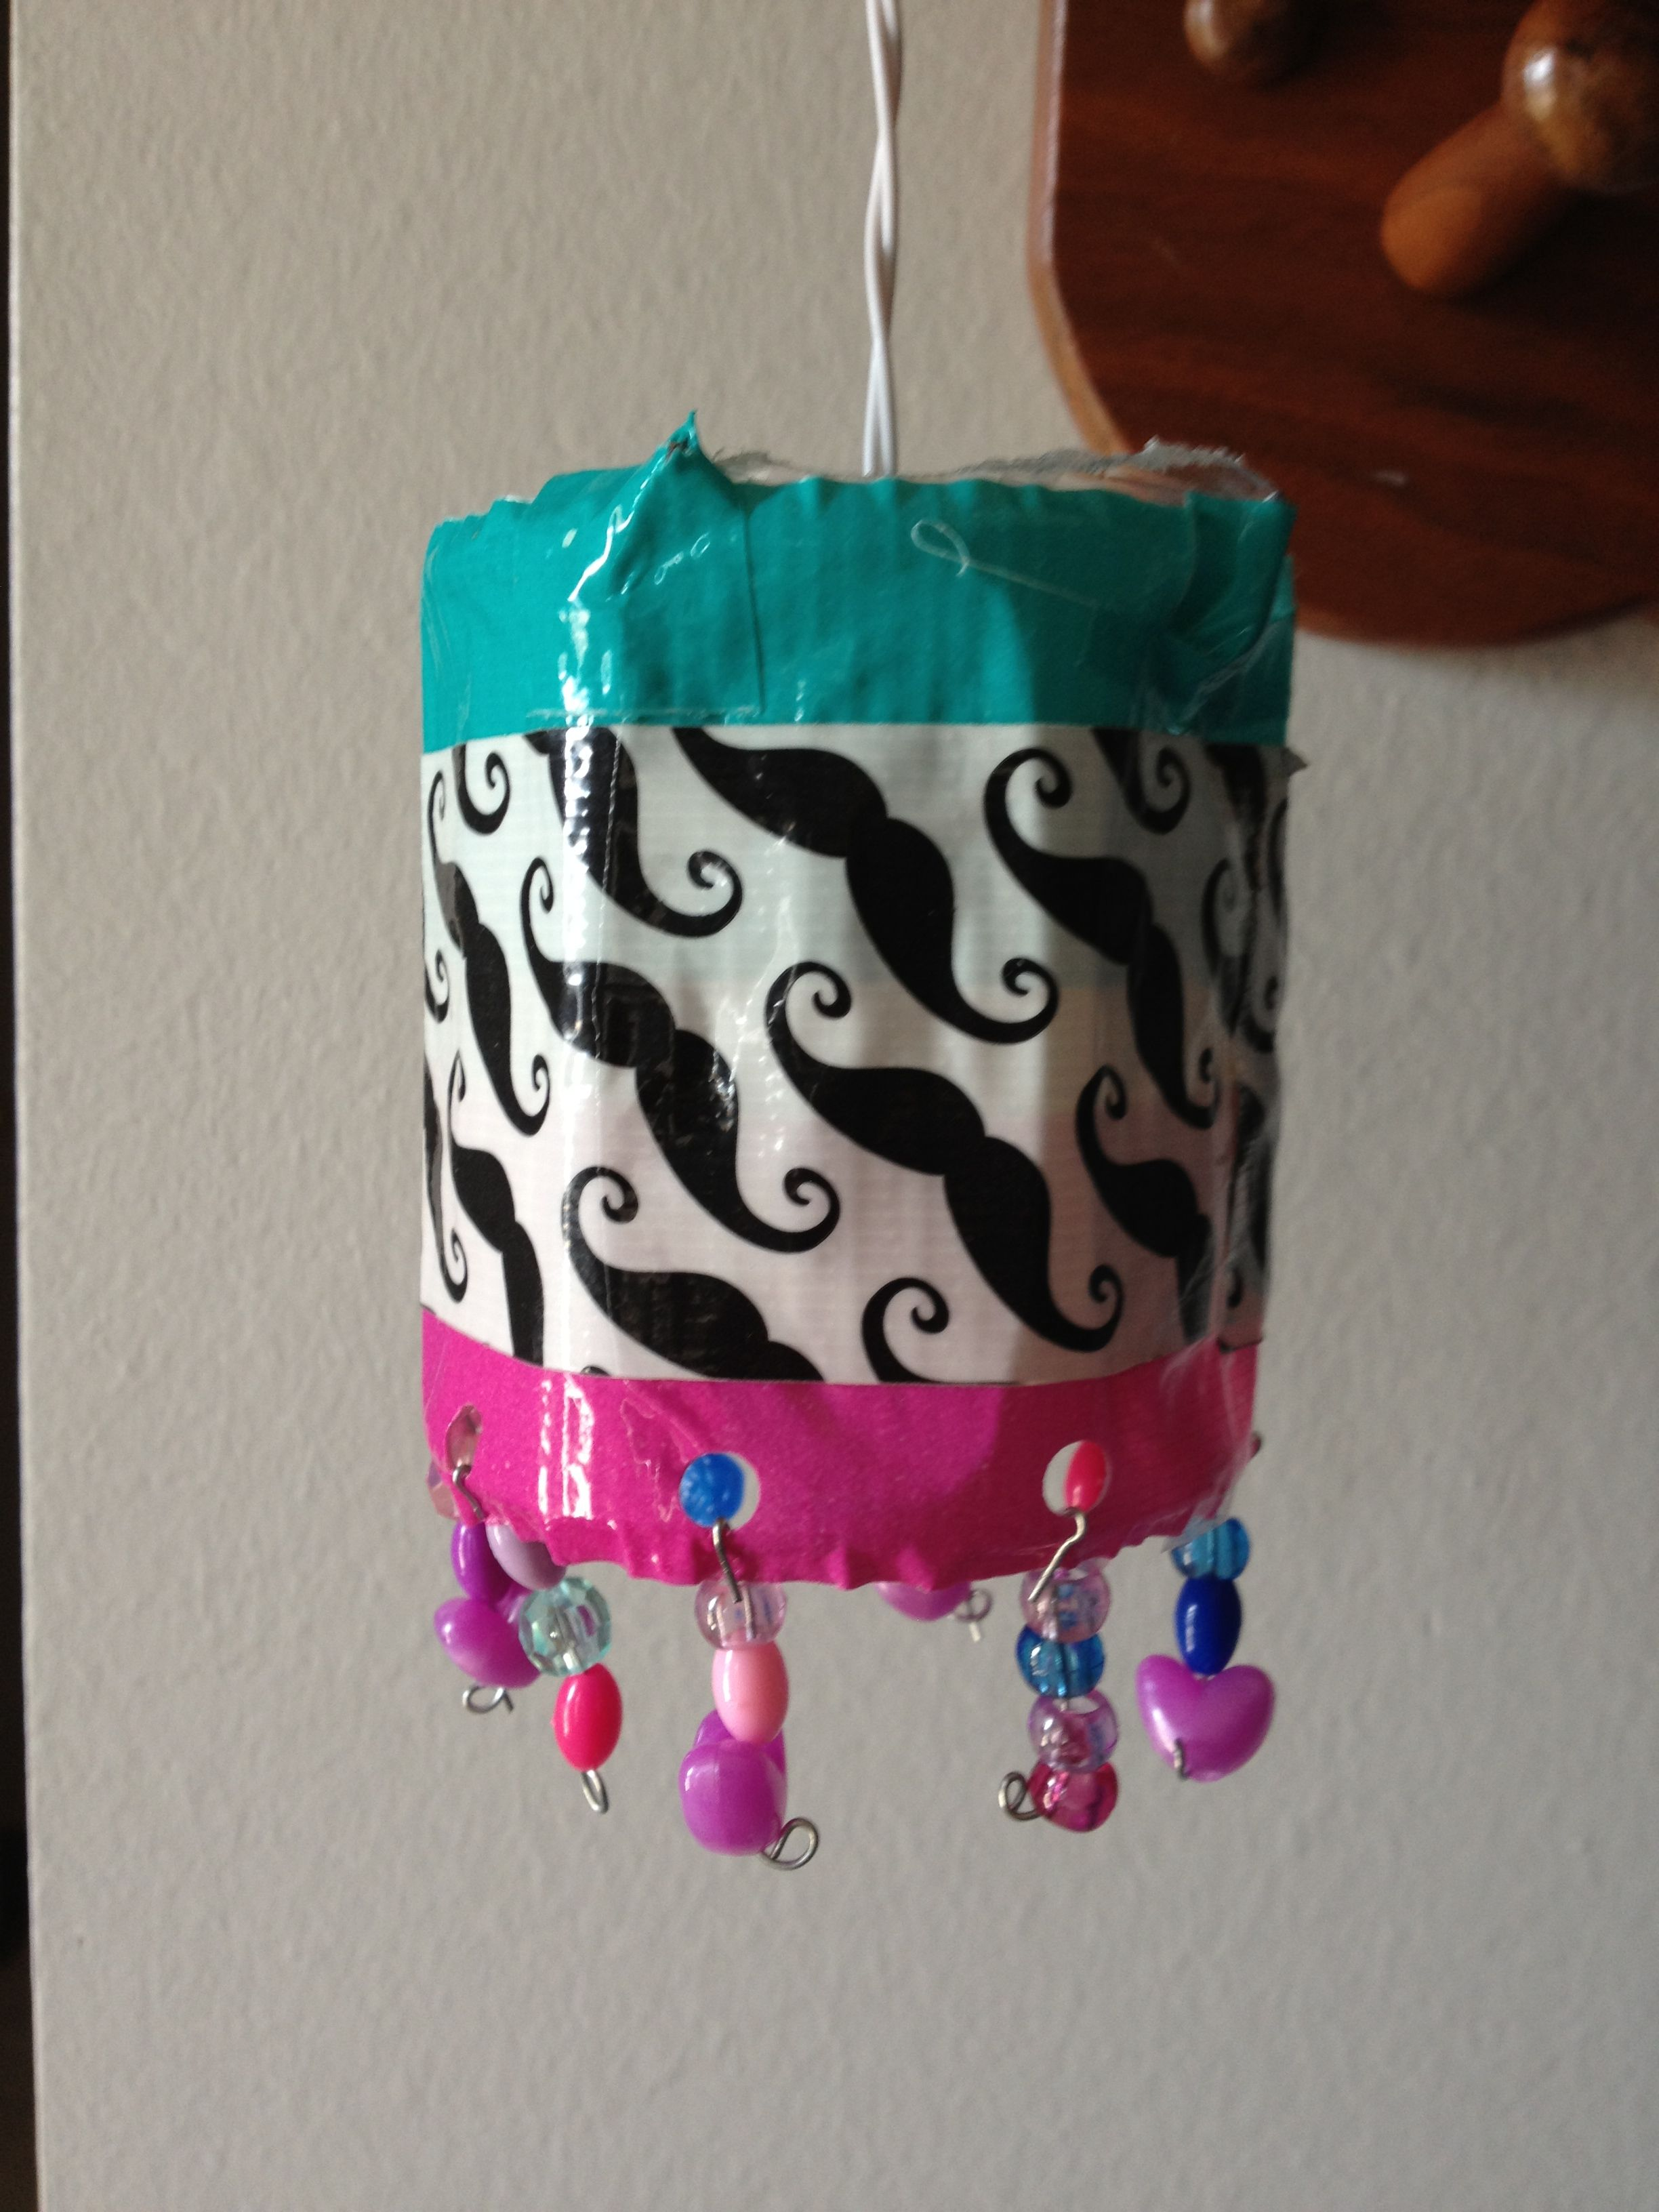 Diy locker chandelier cut top and bottom off a water bottle insert diy locker chandelier cut top and bottom off a water bottle insert a mini arubaitofo Choice Image